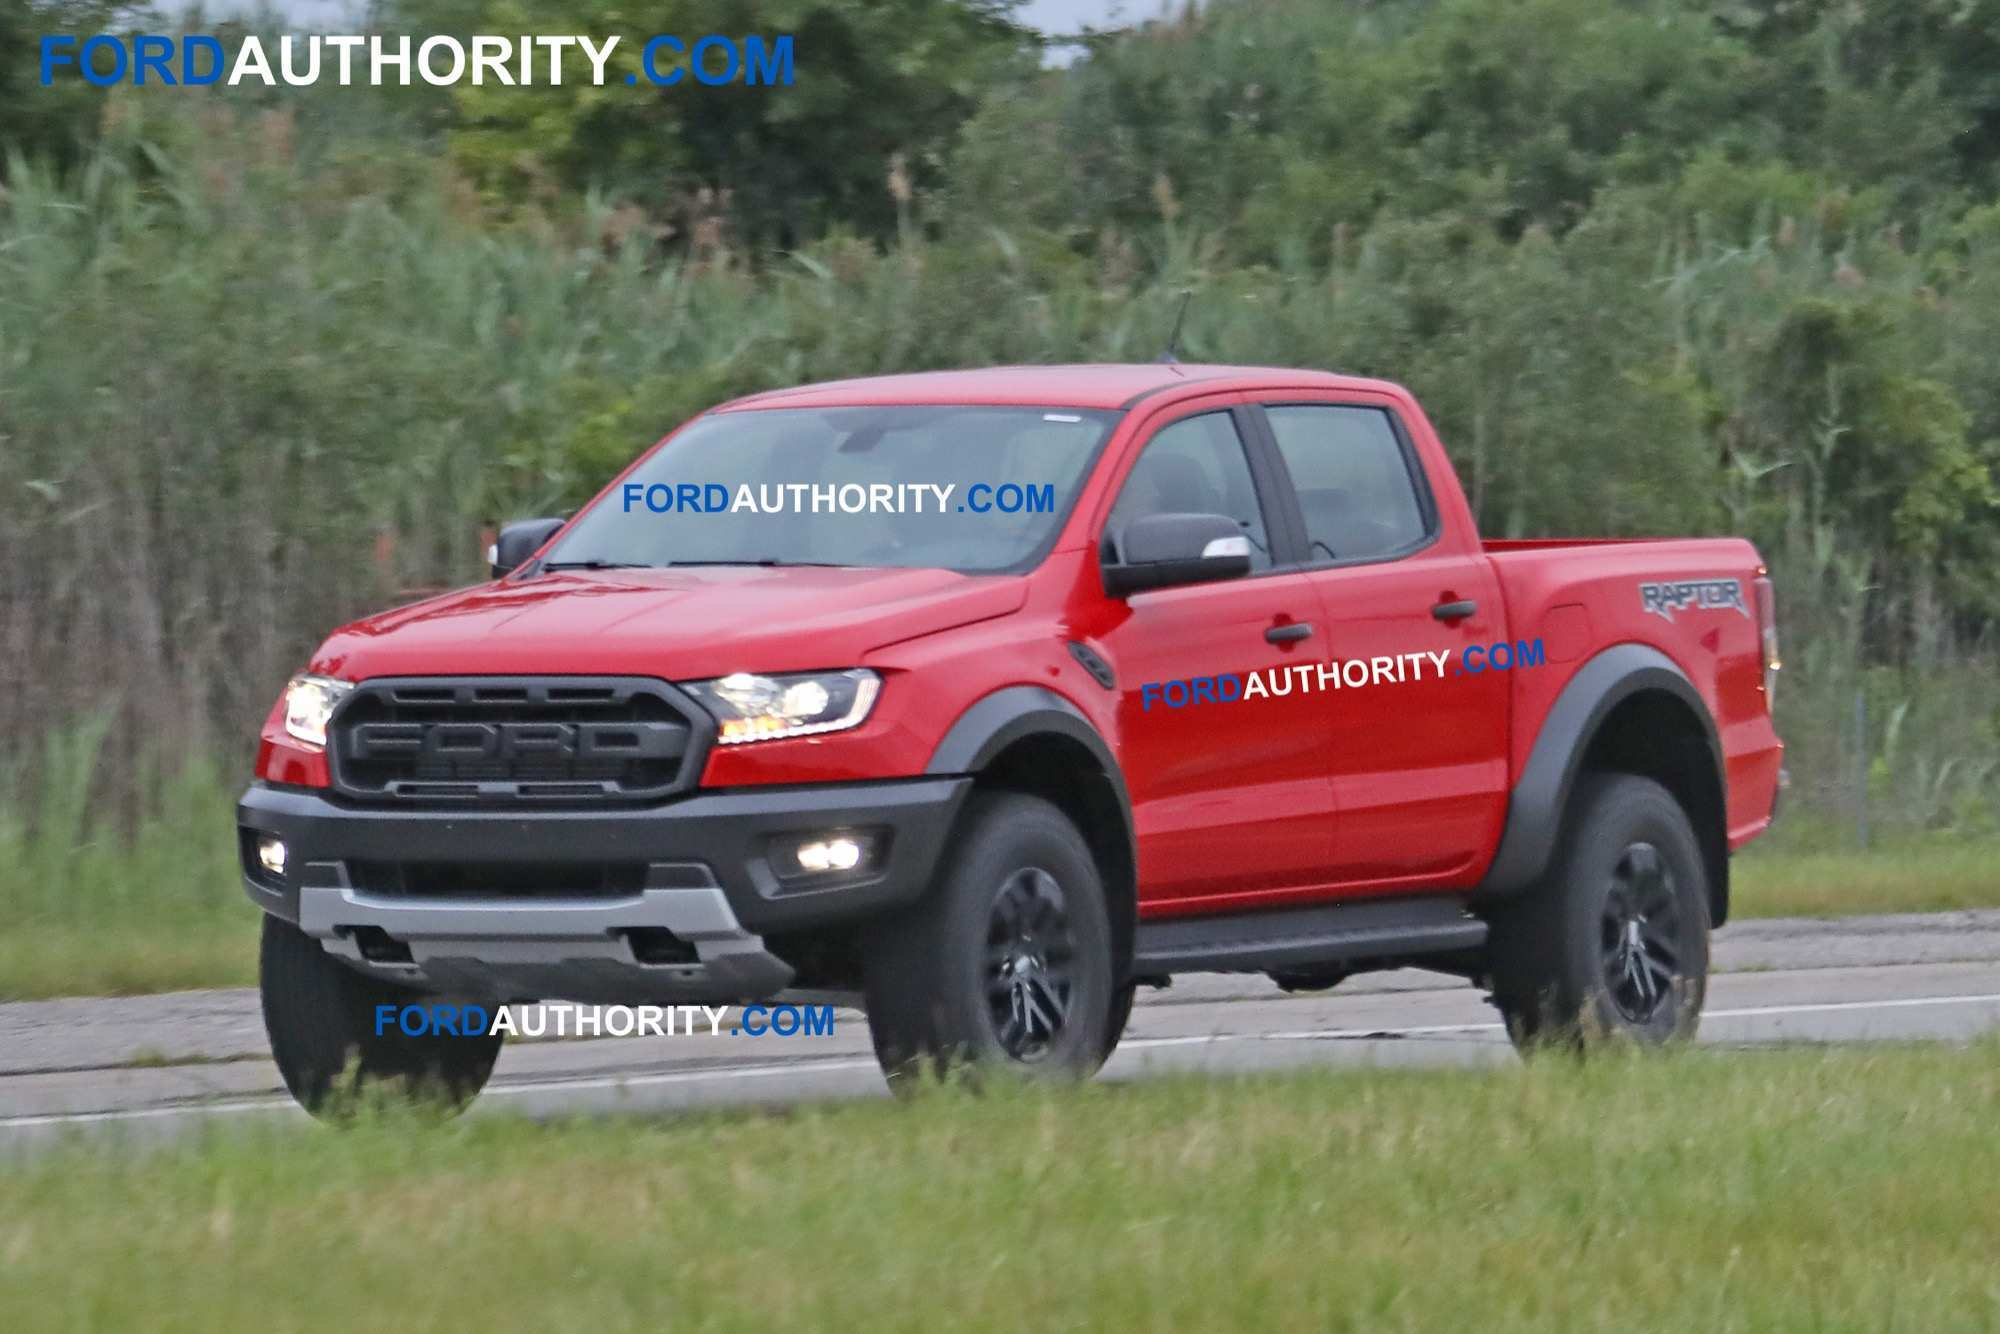 27 New 2019 Ford Ranger Usa Specs Price And Release Date